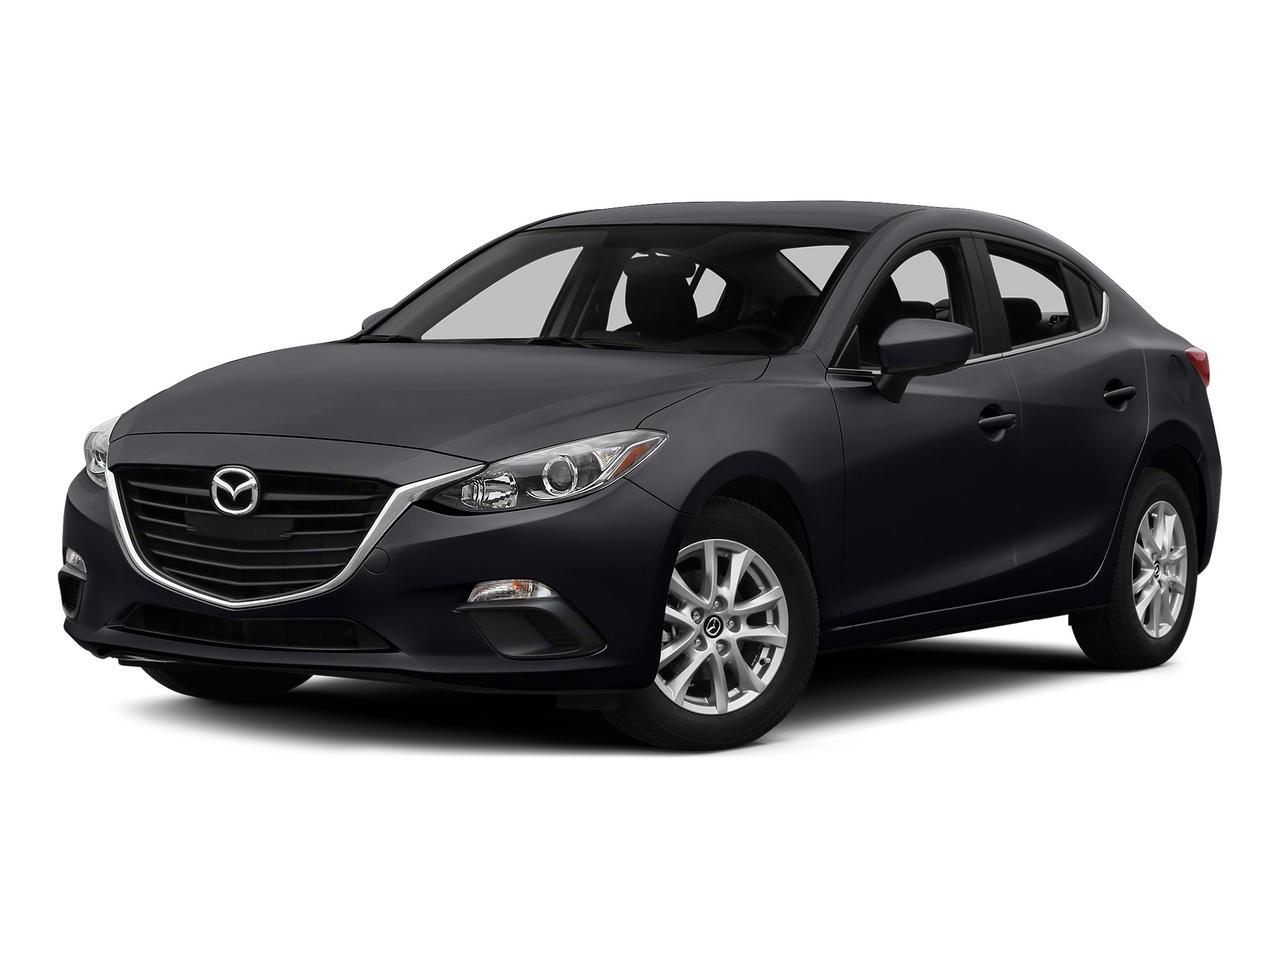 2015 Mazda Mazda3 Vehicle Photo in Portland, OR 97225